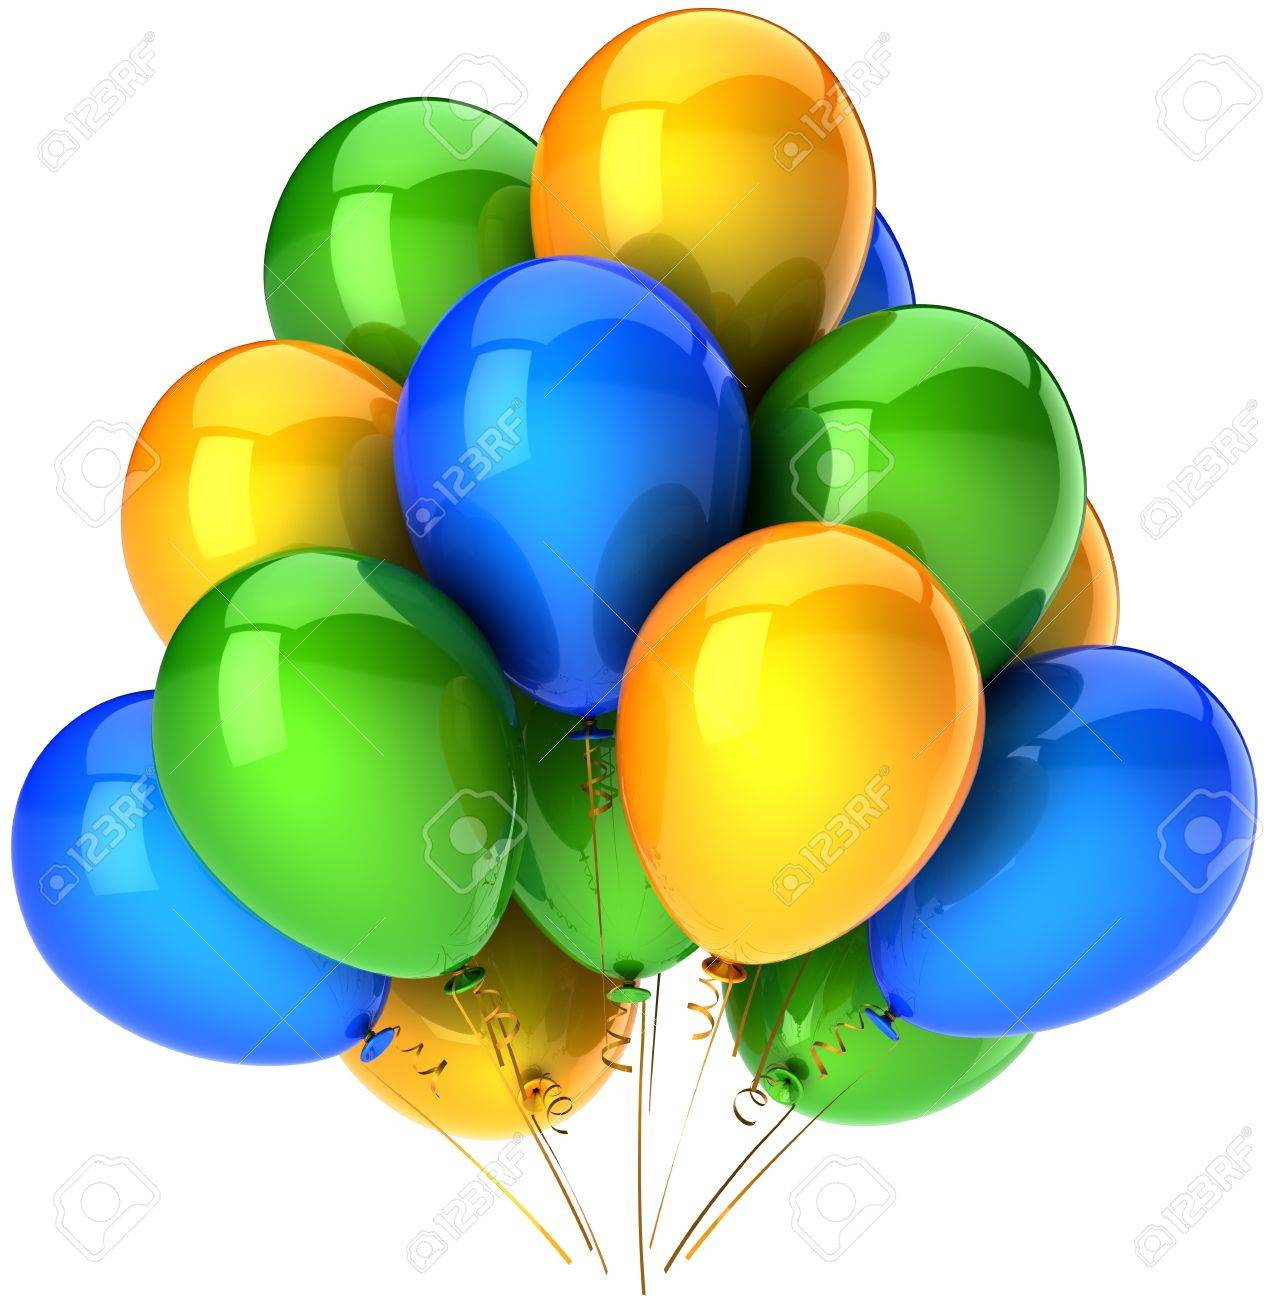 Party balloons multicolor blue orange green. Shiny colorful decoration for holiday birthday celebration. Fun joyful happiness positive abstract. Detailed render 3d. Isolated on white background Stock Photo - 9180574